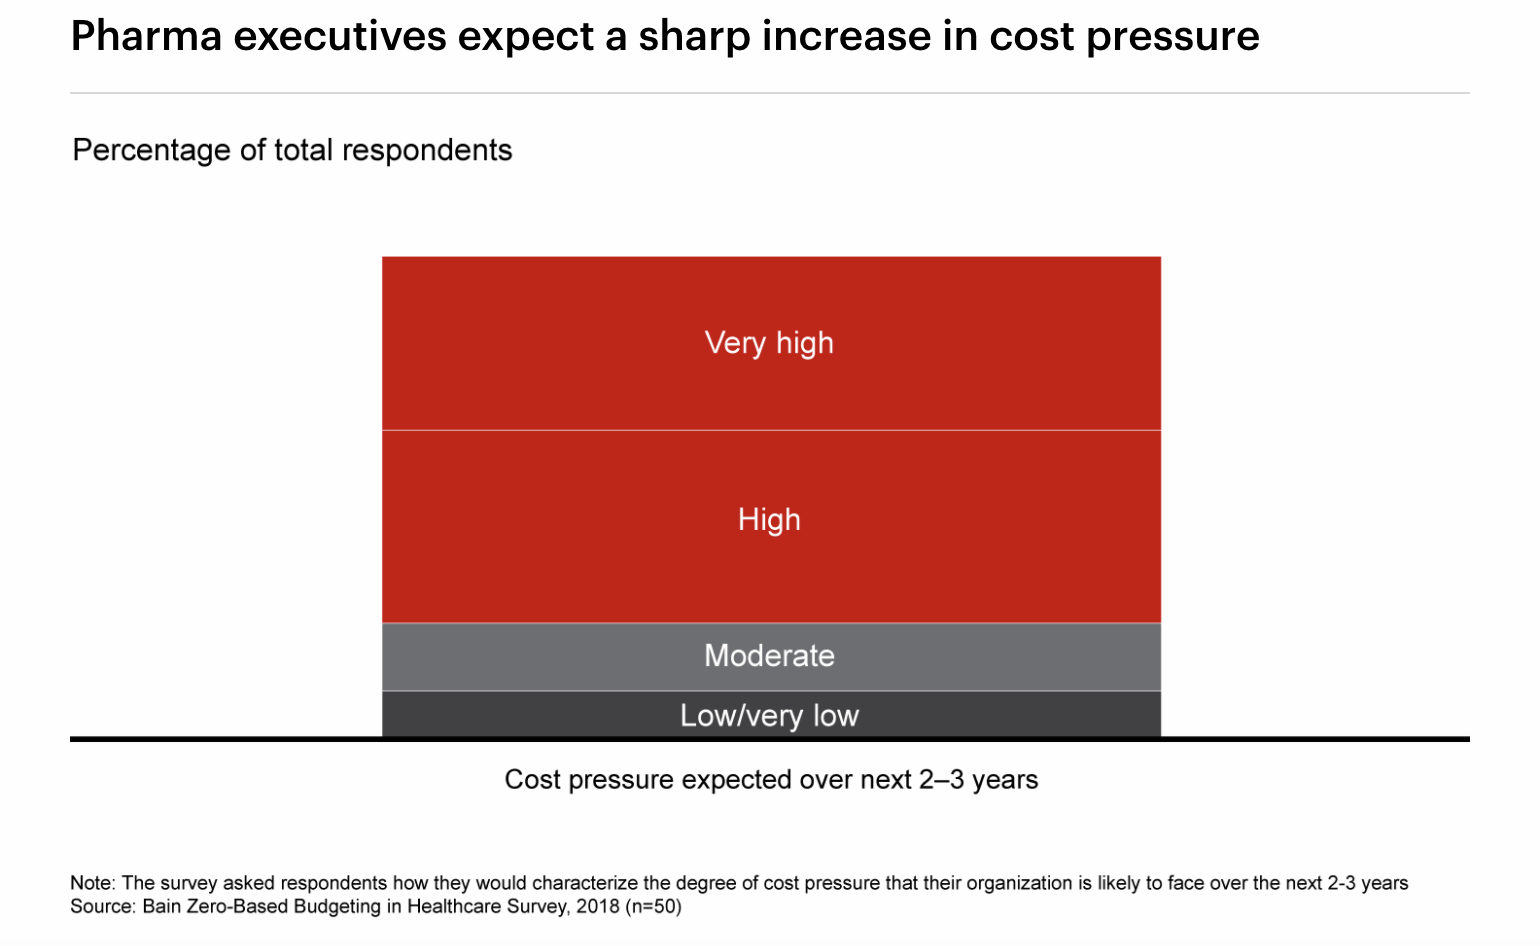 talent transformation in pharma operations increase in cost pressure